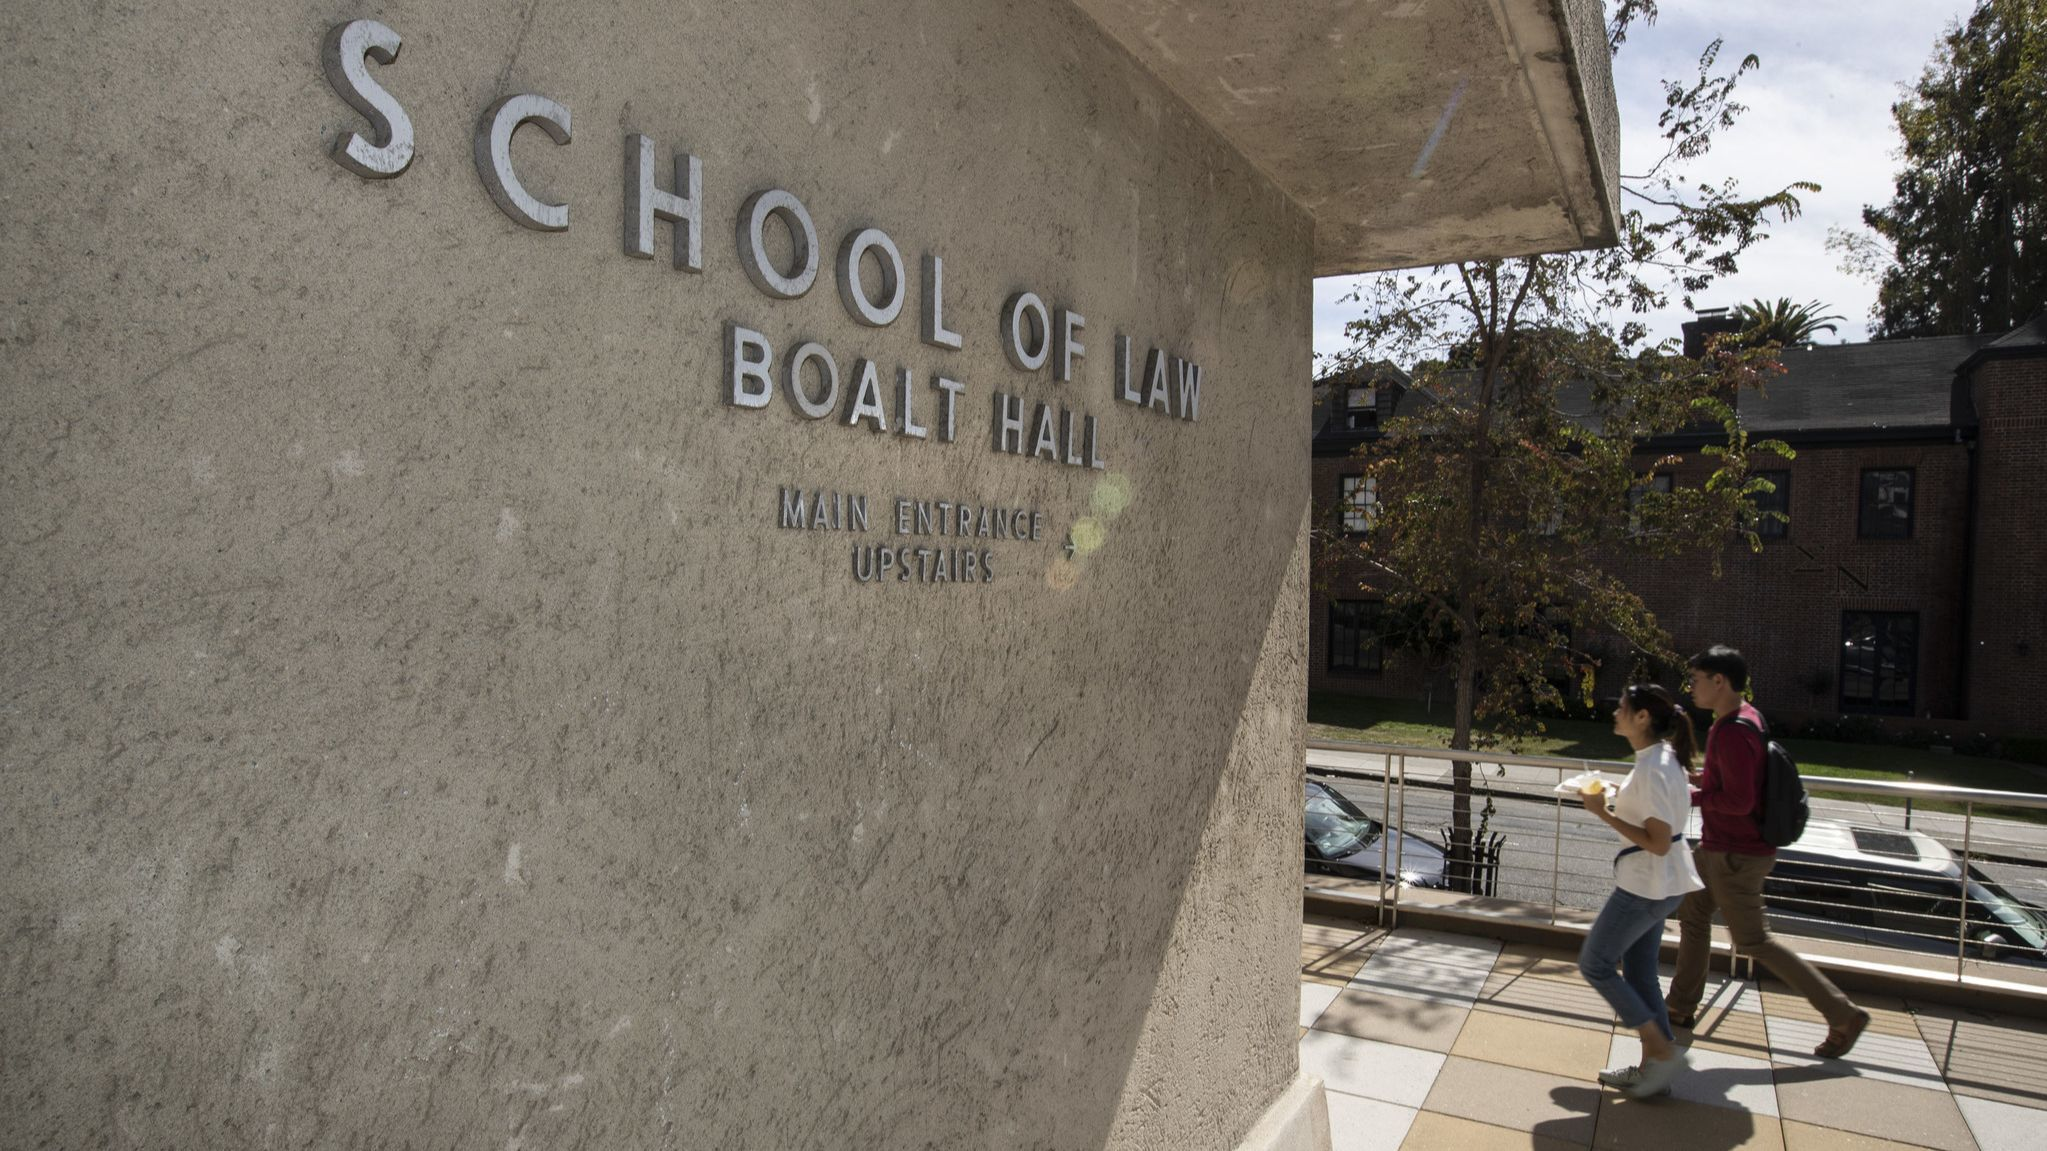 UC Berkeley law school confronts the racist legacy behind its famed Boalt Hall | Los Angeles Times